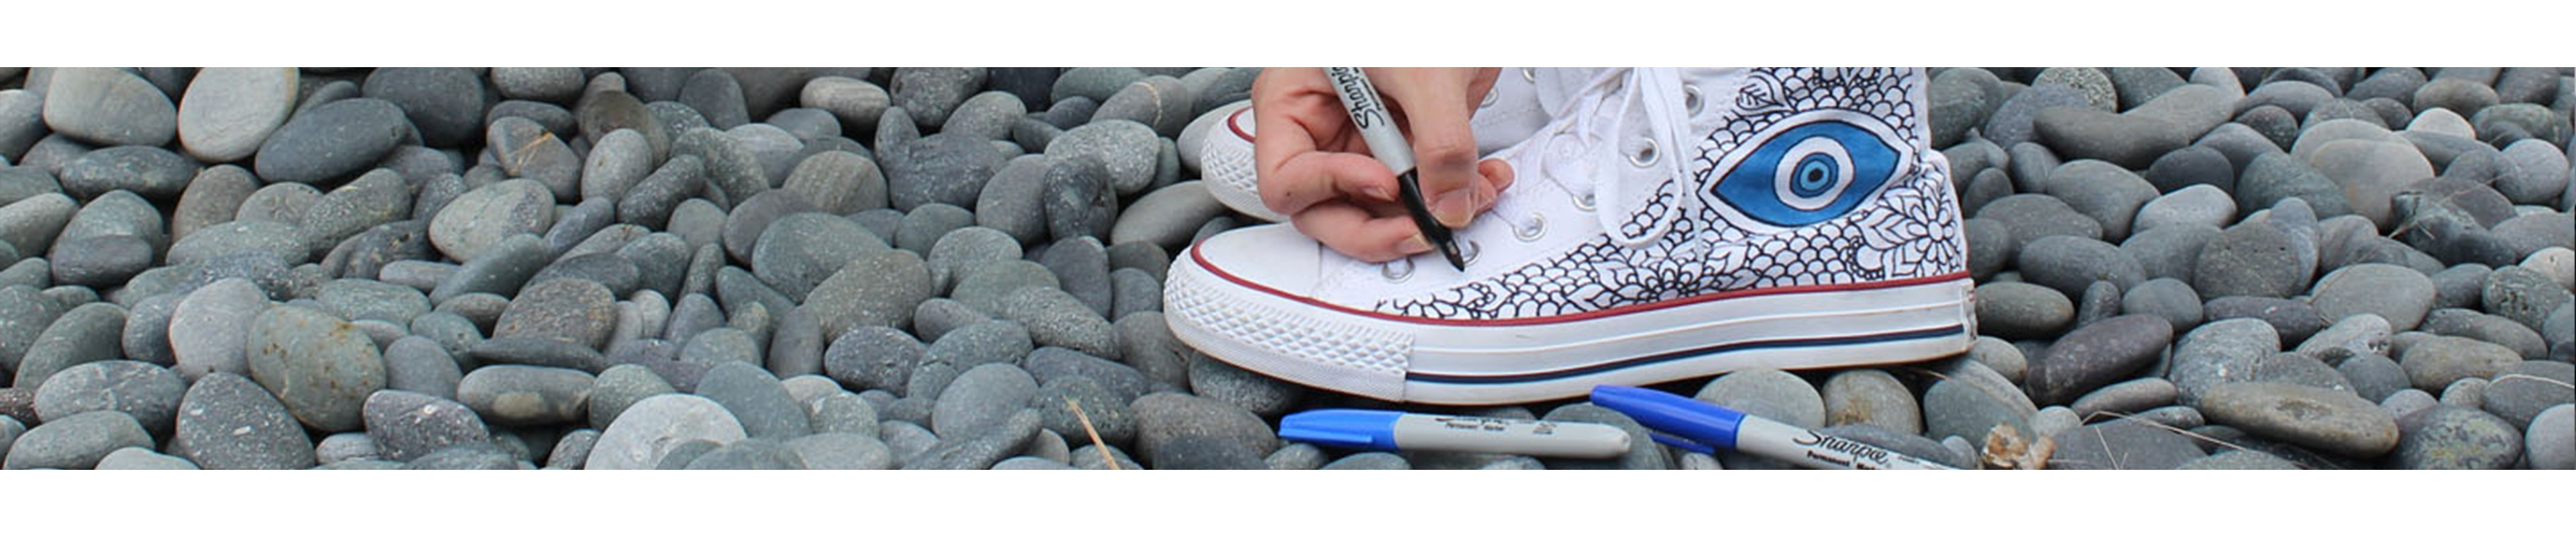 get-inspired-canvas-shoes-decorated-with-sharpie-fine-bp1d.jpg